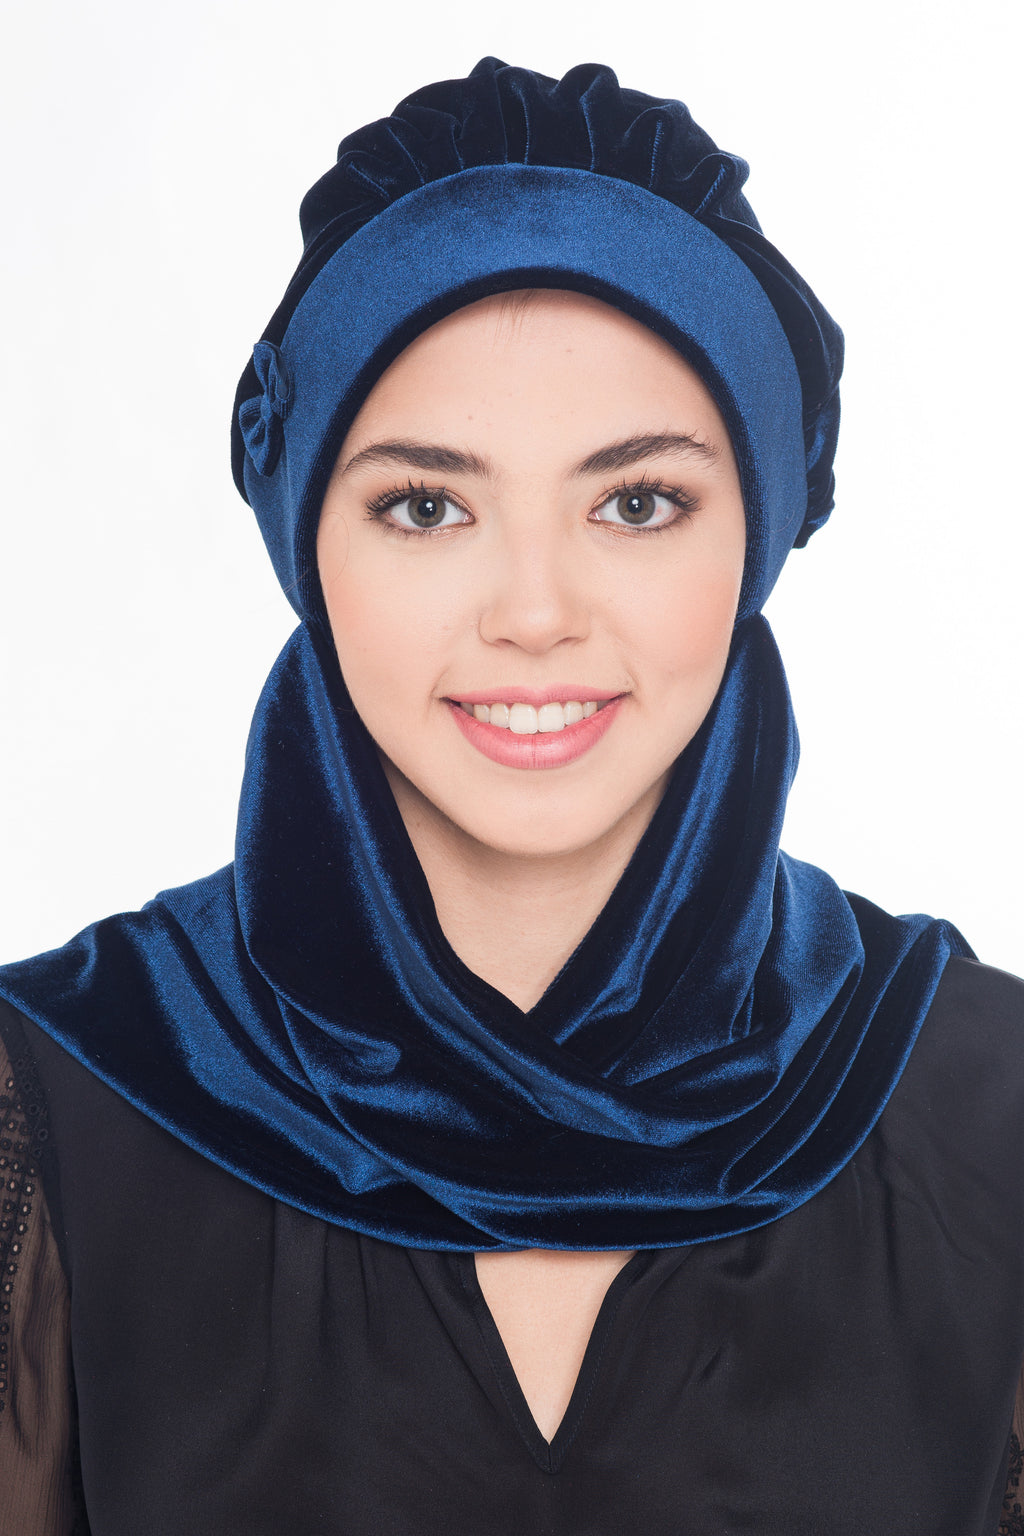 Velour Hat with Attached Scarf & Bow - Navy